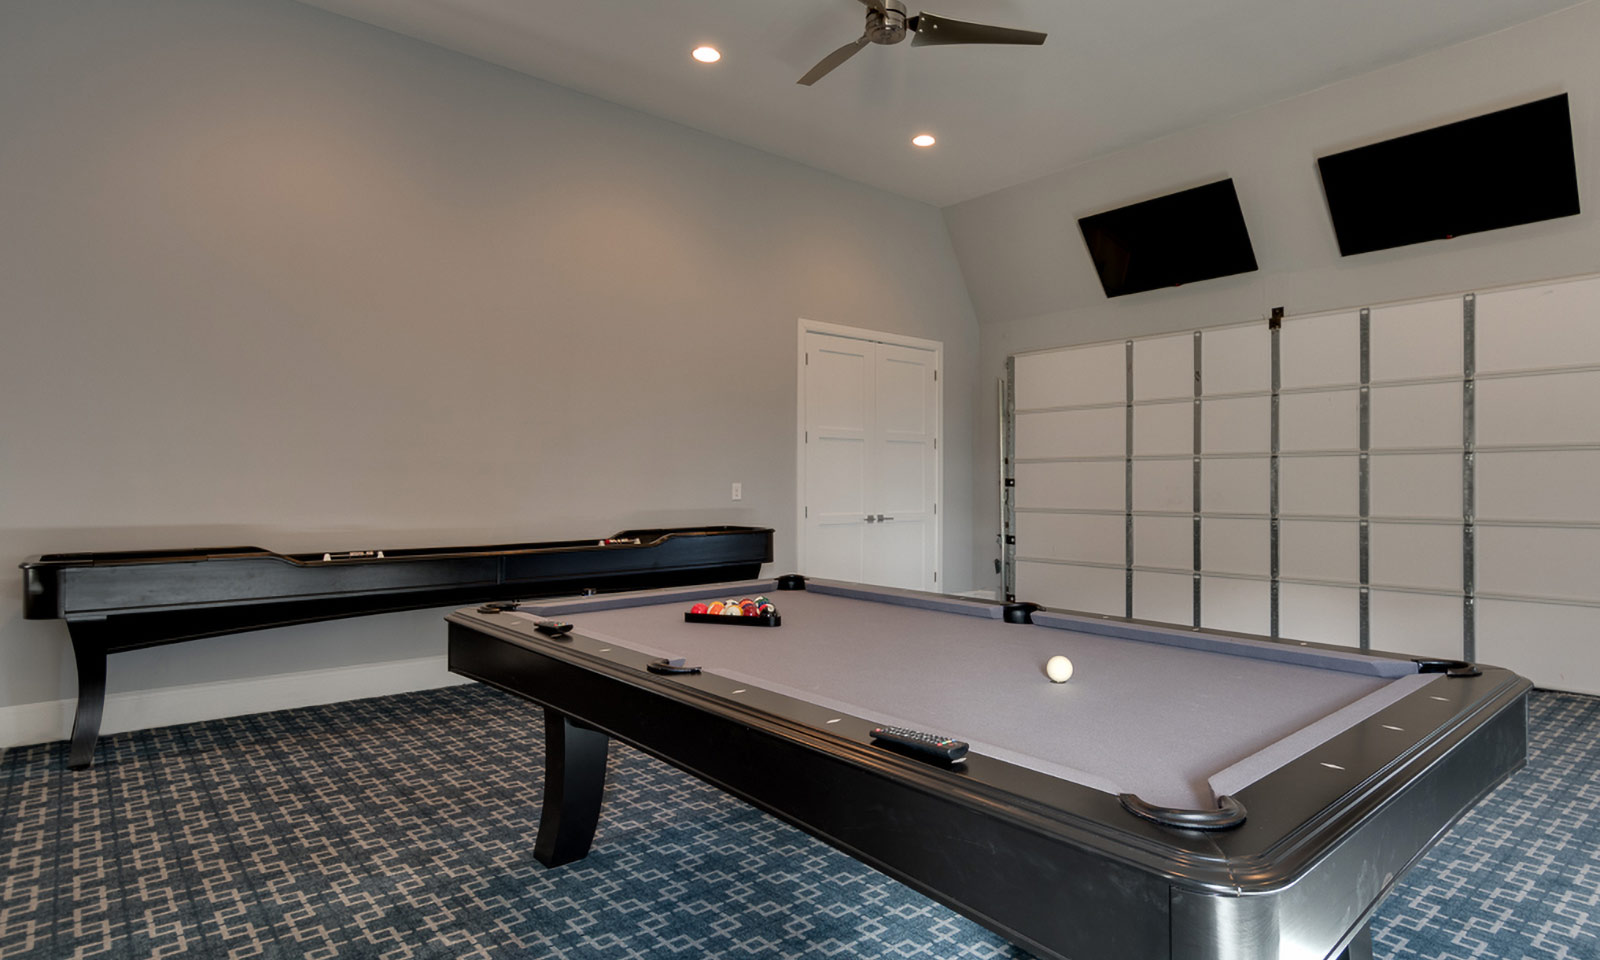 [amenities:Pool-Table:2] Pool Table